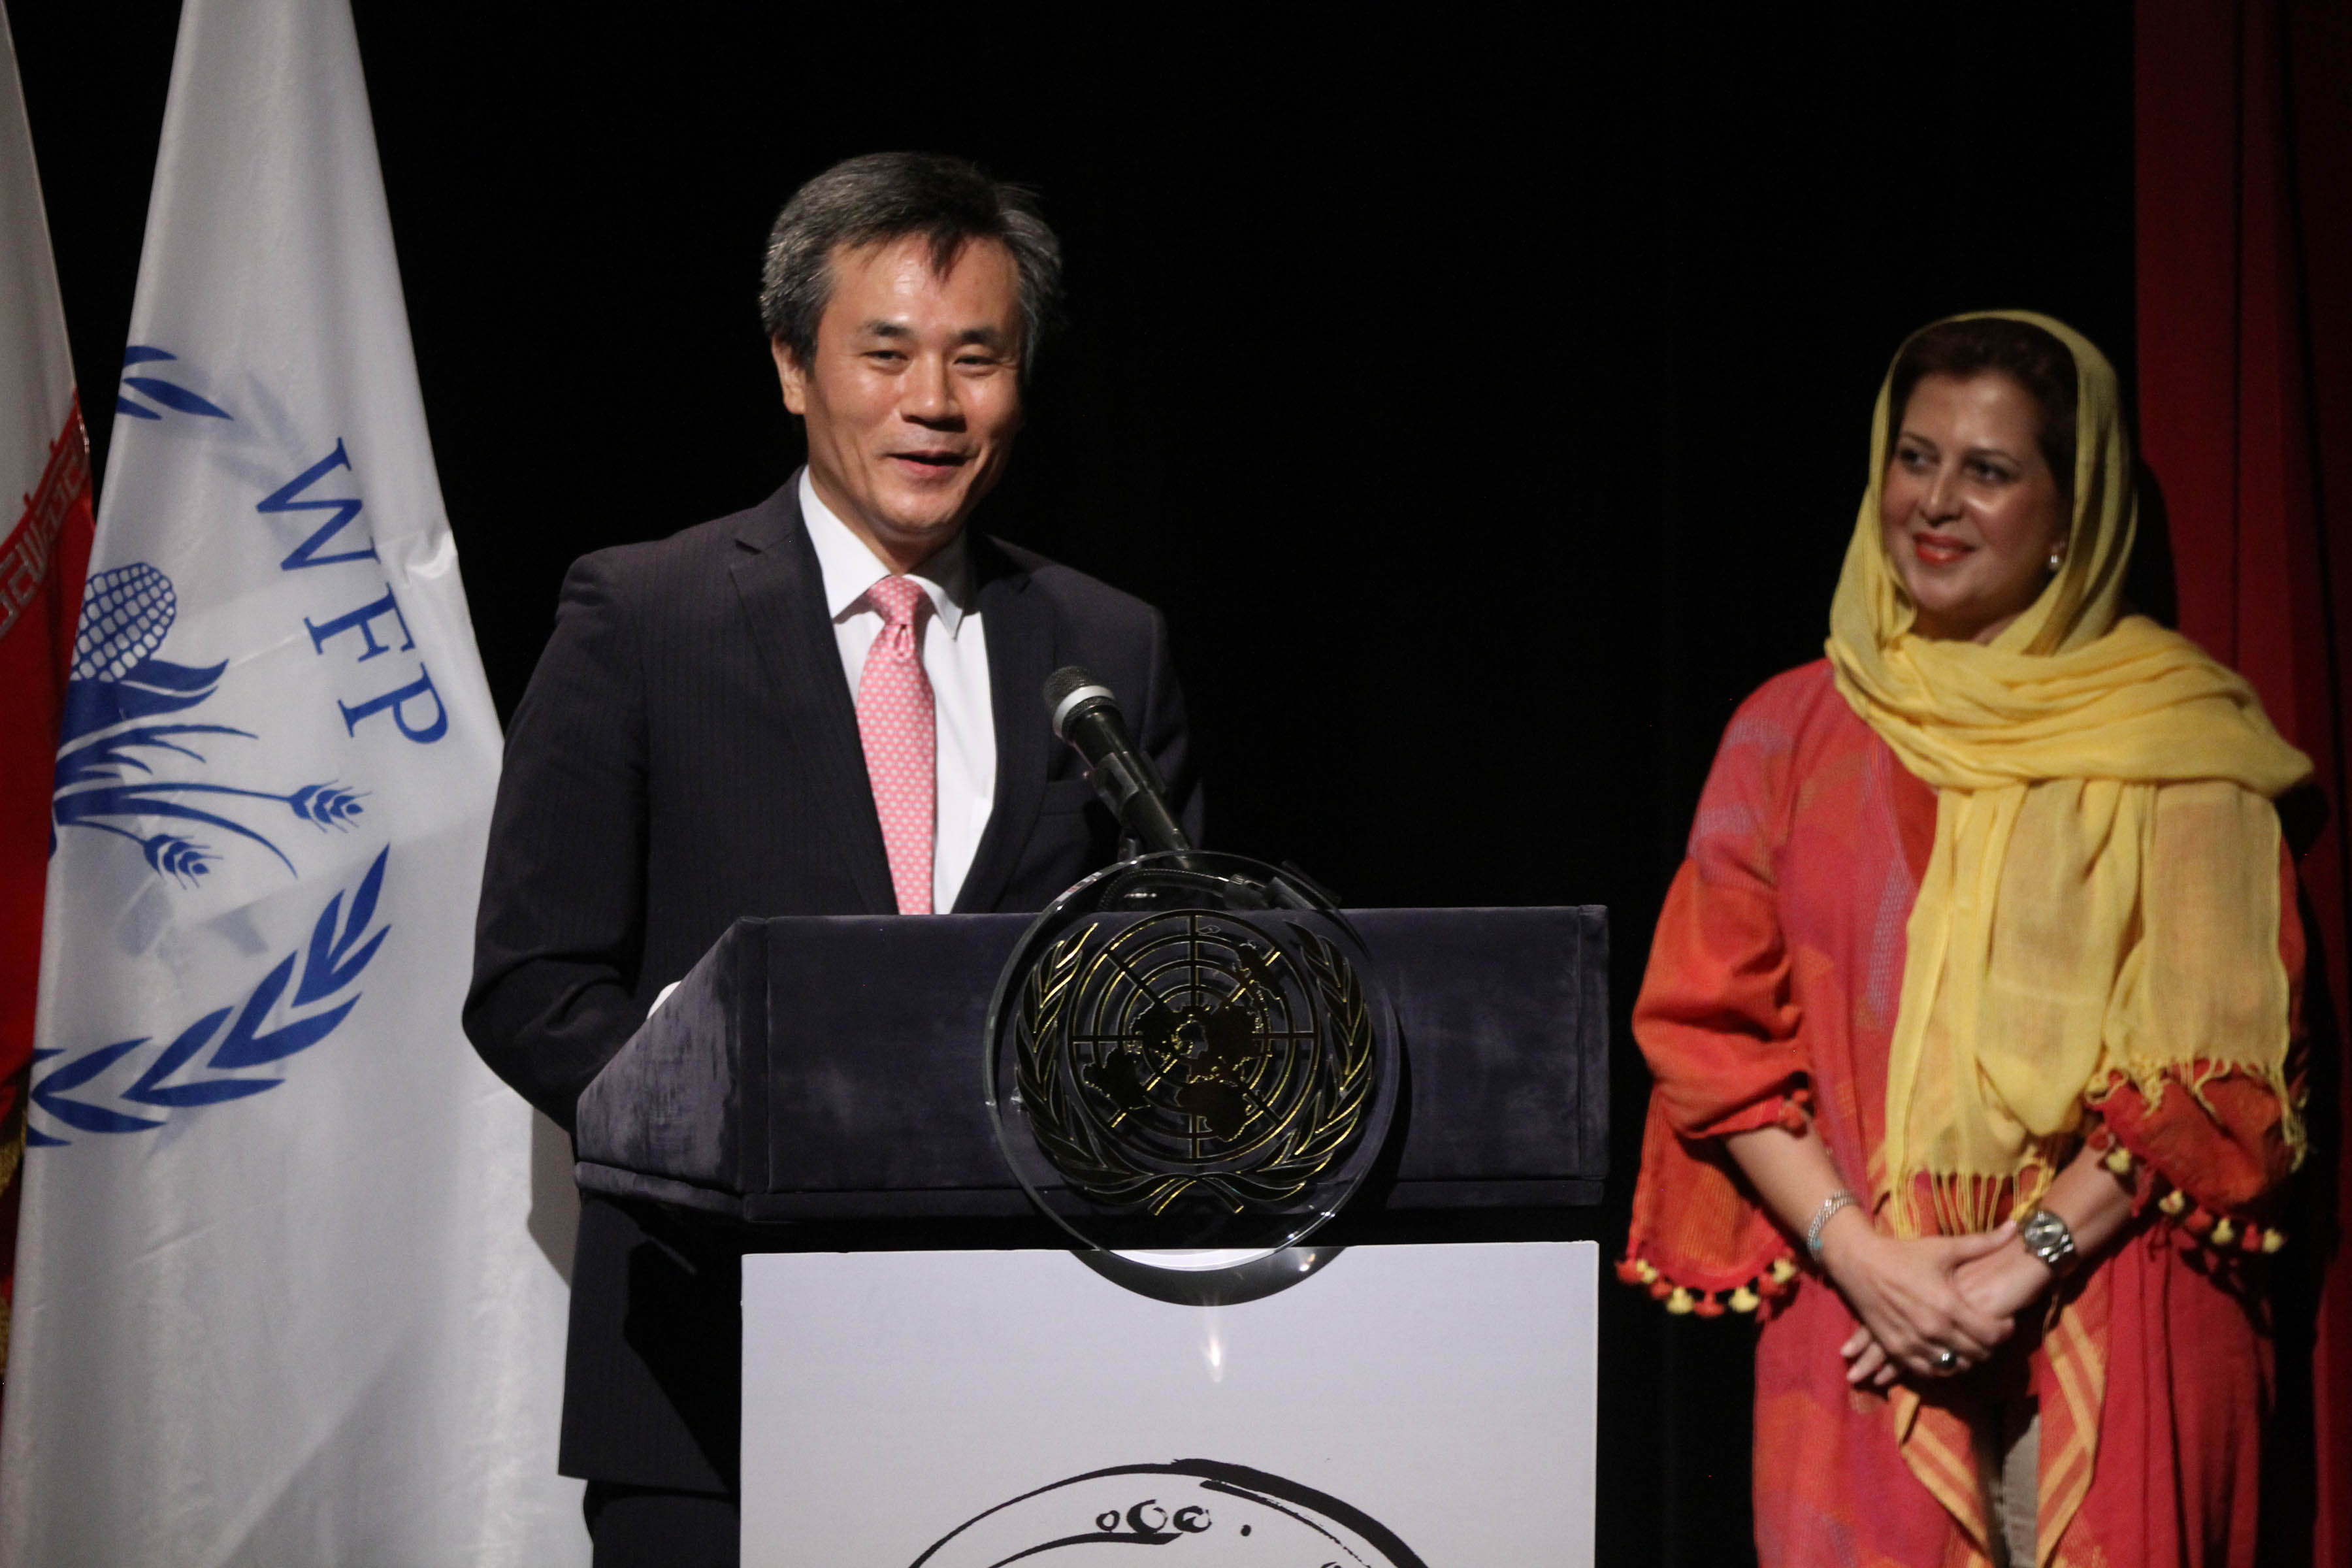 Republic Of Korea Becomes Top Donor To WFP In The Islamic Republic Of Iran